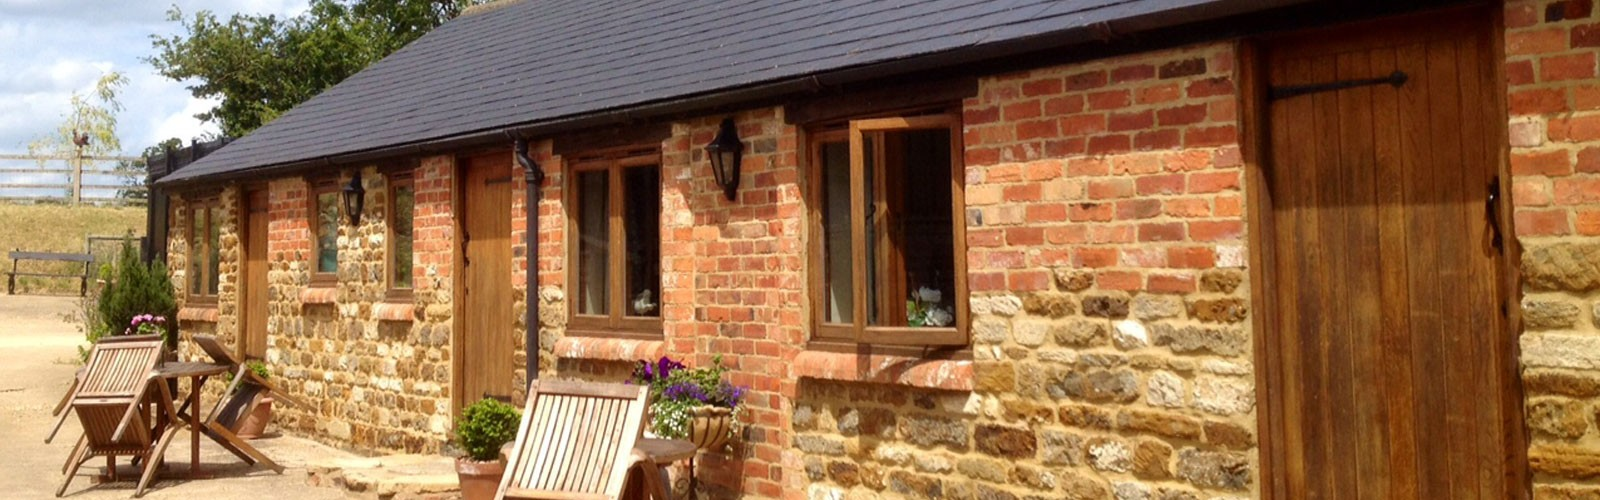 Self catering accommodation Silverstone